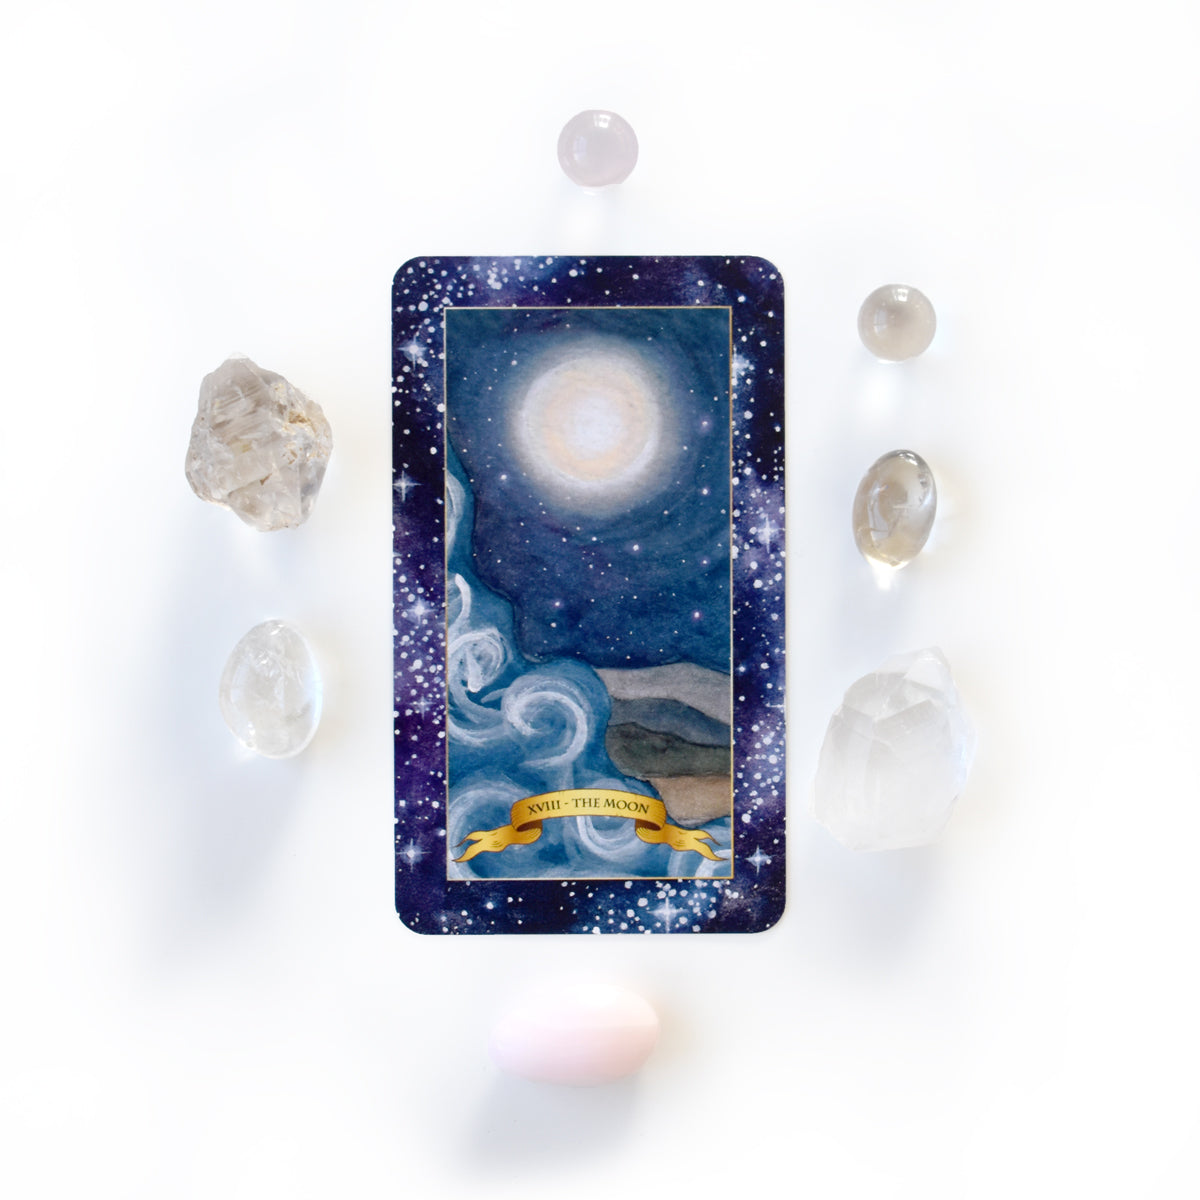 The Constellation Tarot deck - Learn tarot card meanings of the Moon